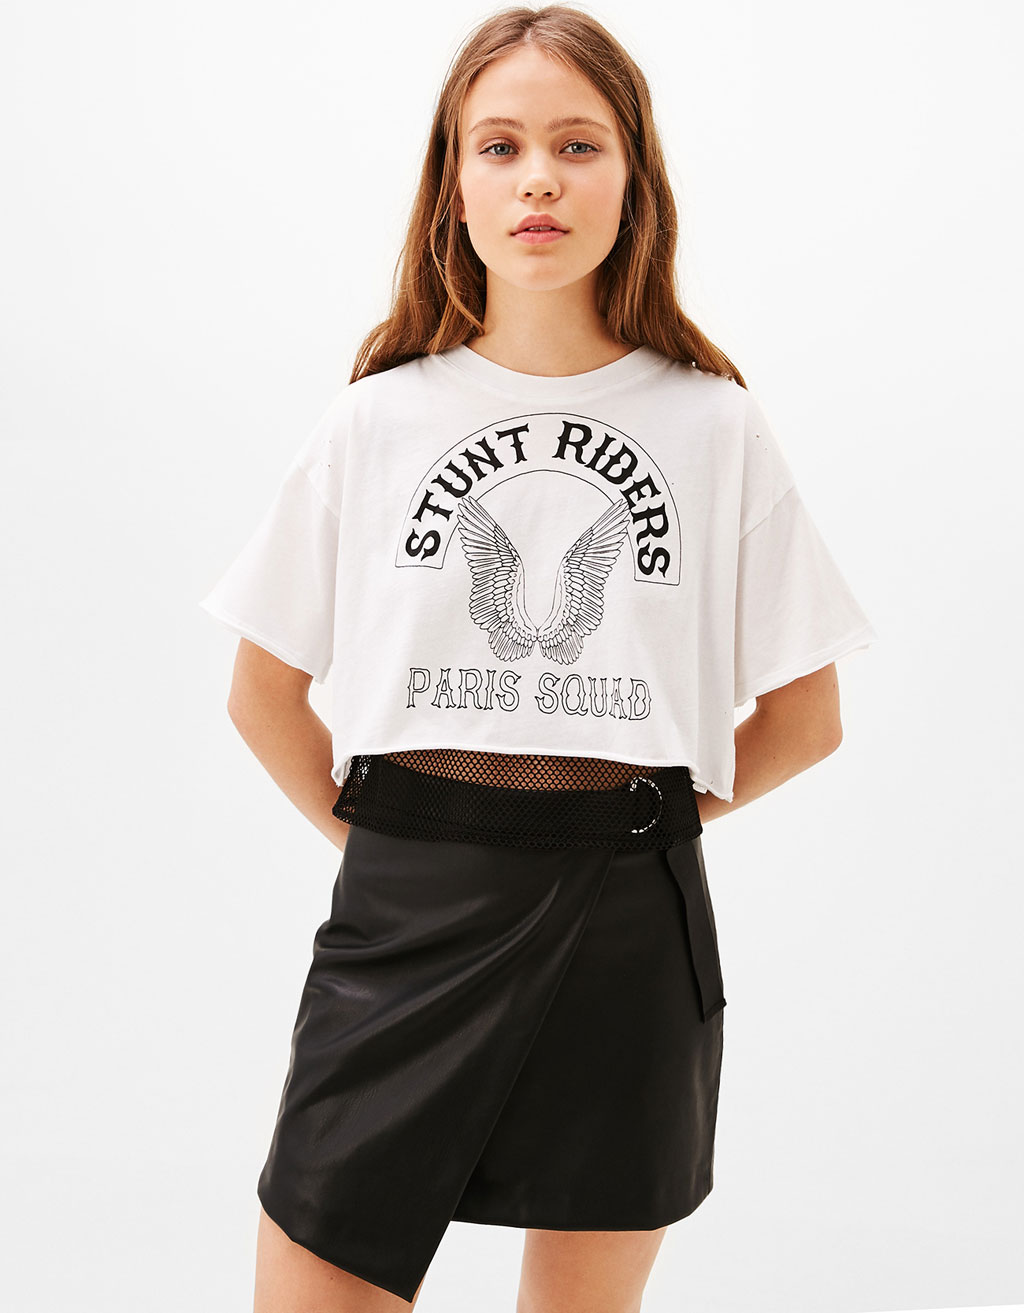 'Stunt Riders' mesh double-layer T-shirt